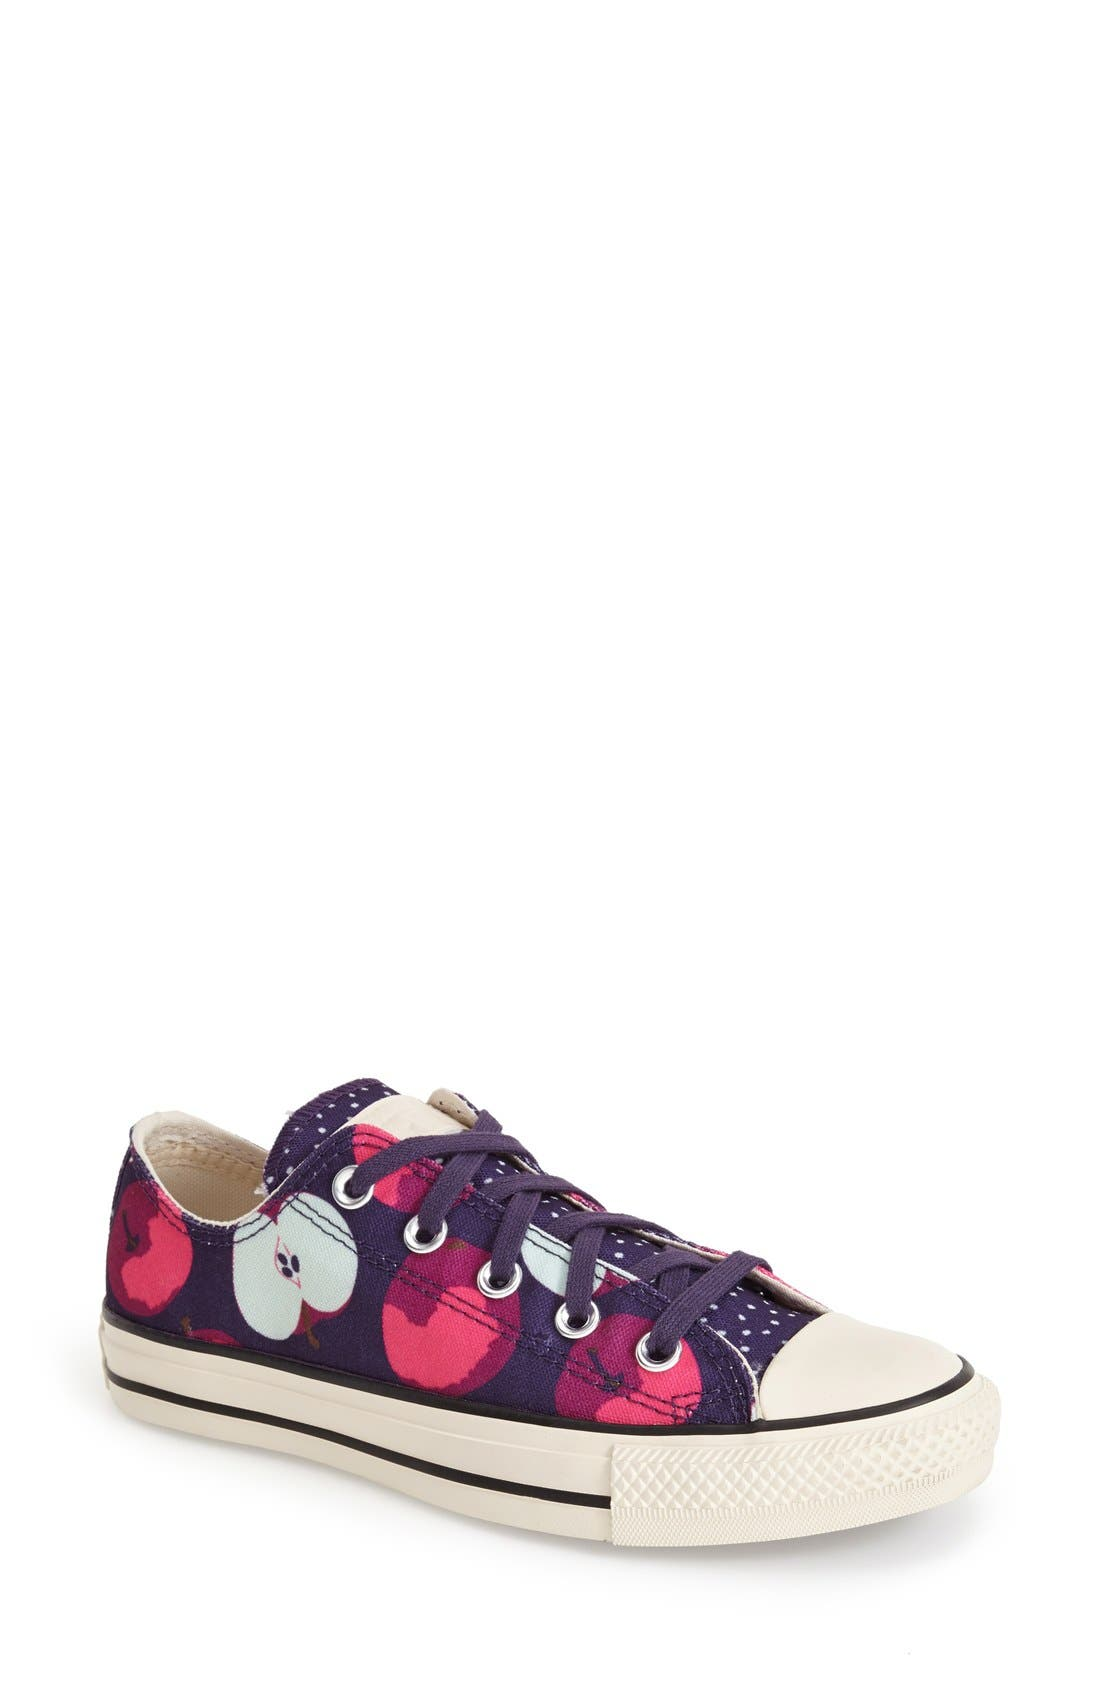 Alternate Image 1 Selected - Converse Chuck Taylor® All Star® Apple Print Sneaker (Women)